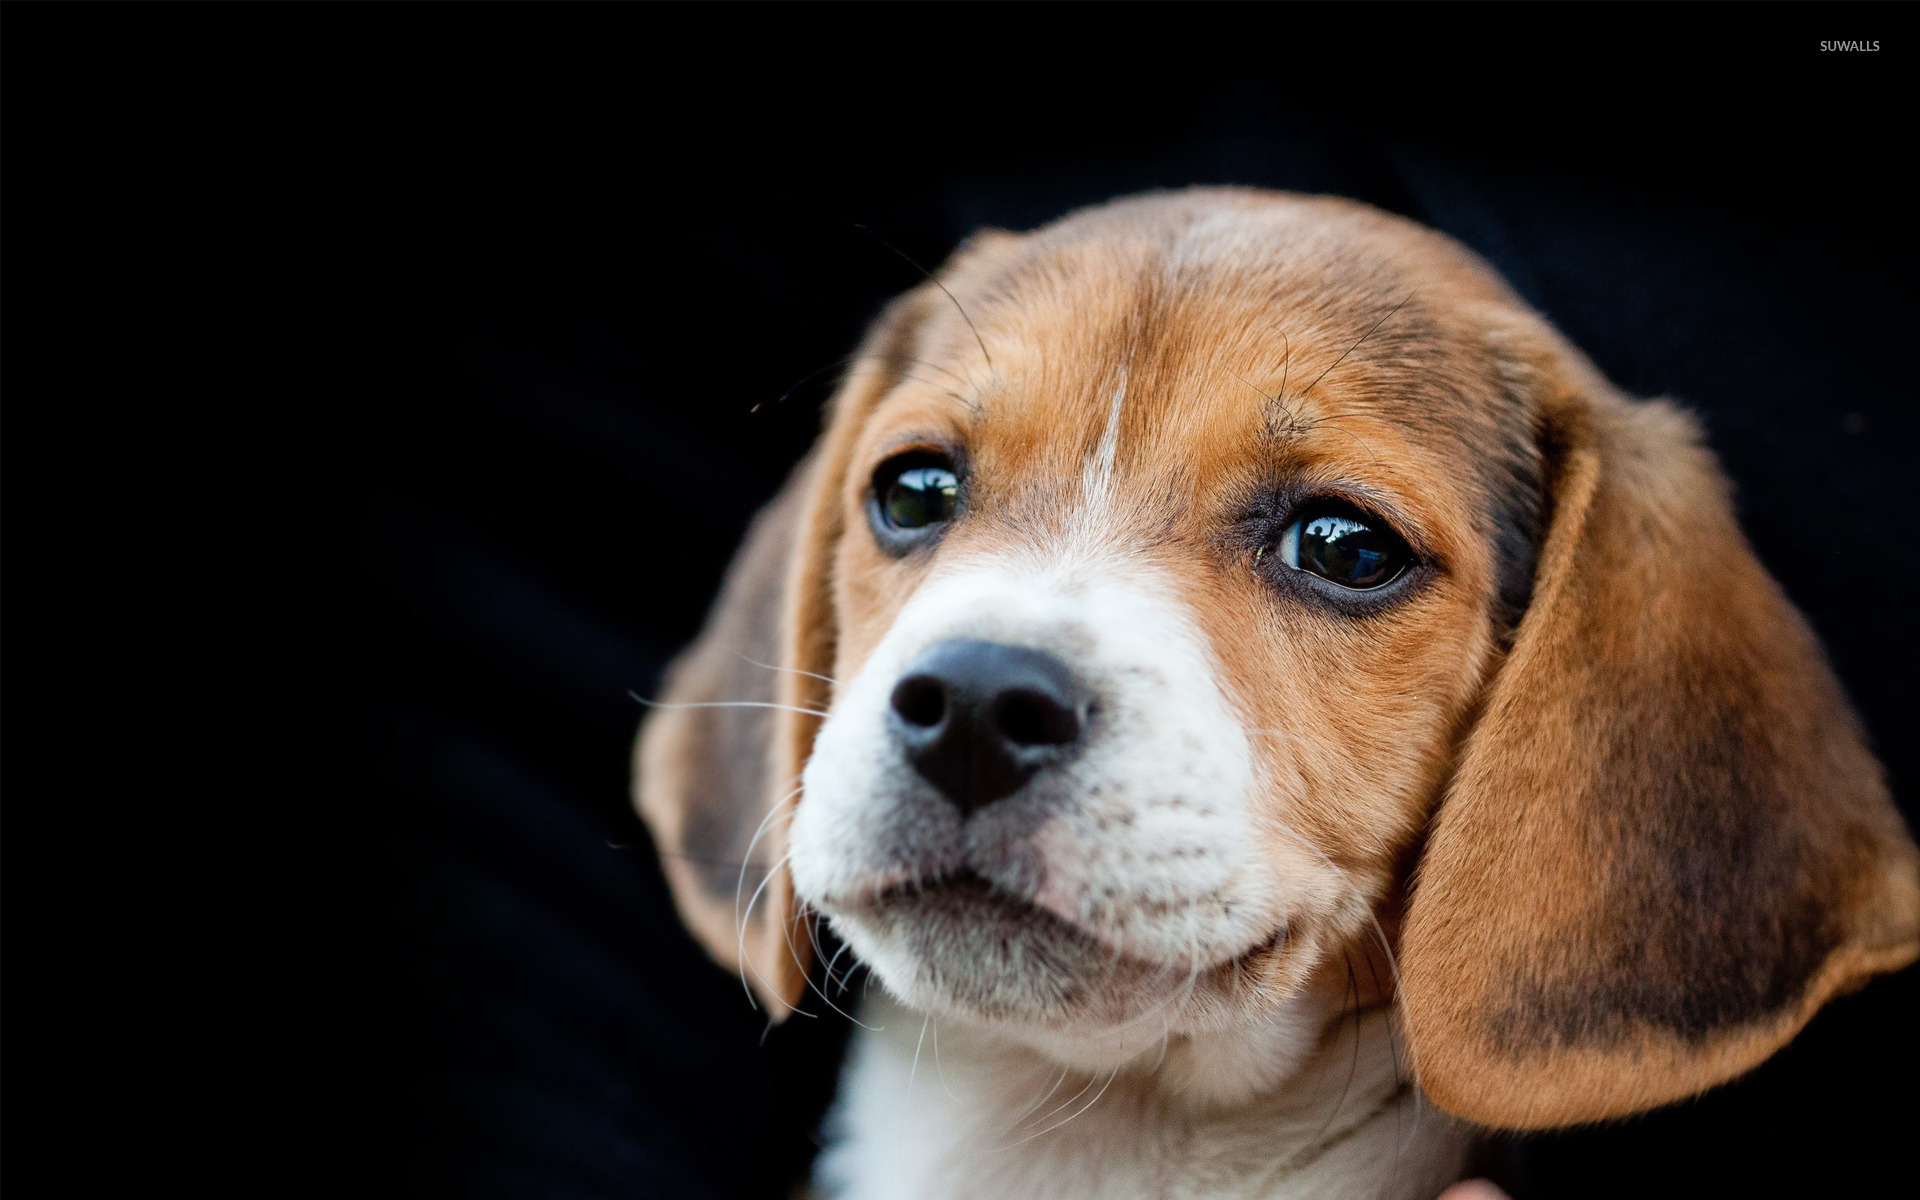 Beagle puppy wallpaper - Animal